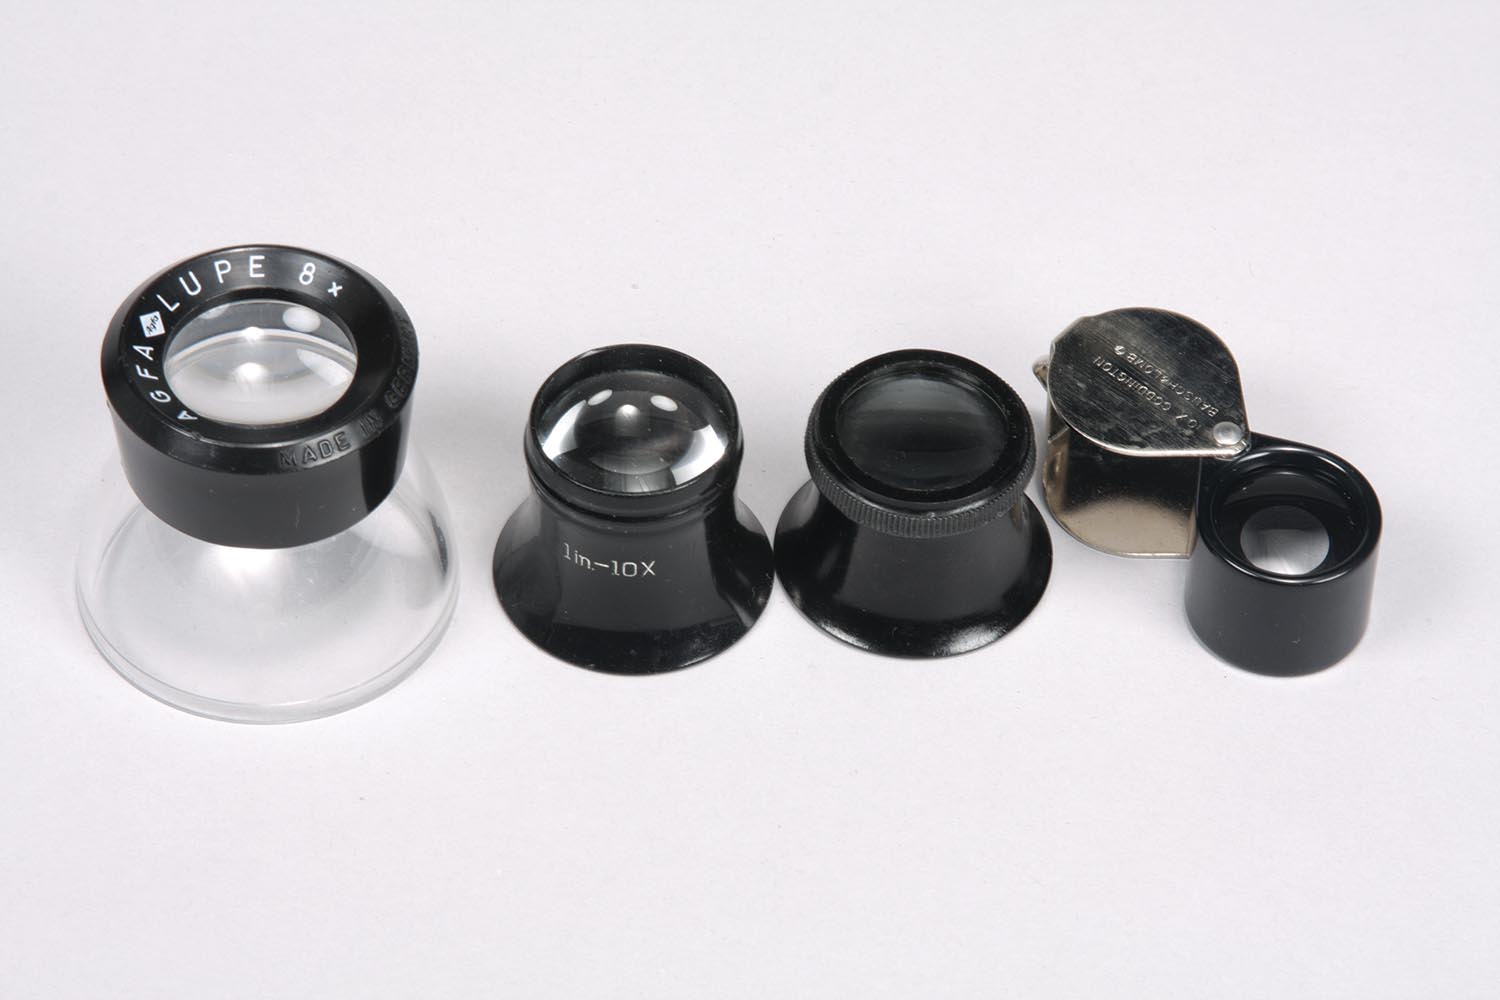 From left to right: A photographer's loupe, two watchmaker's loupes, and a folding pocket loupe.